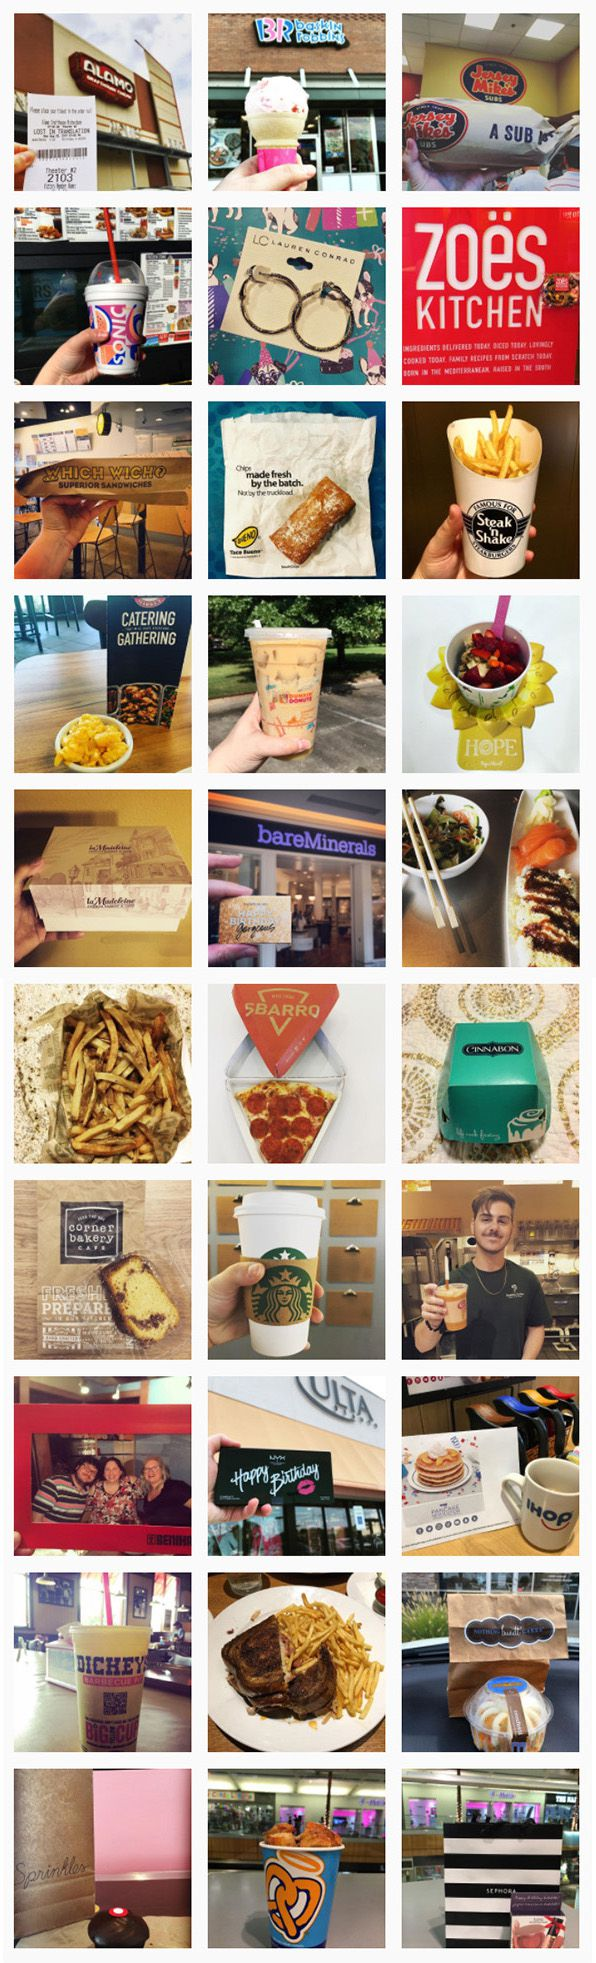 Here's a look at all 30 of Nicole Ido's freebies.